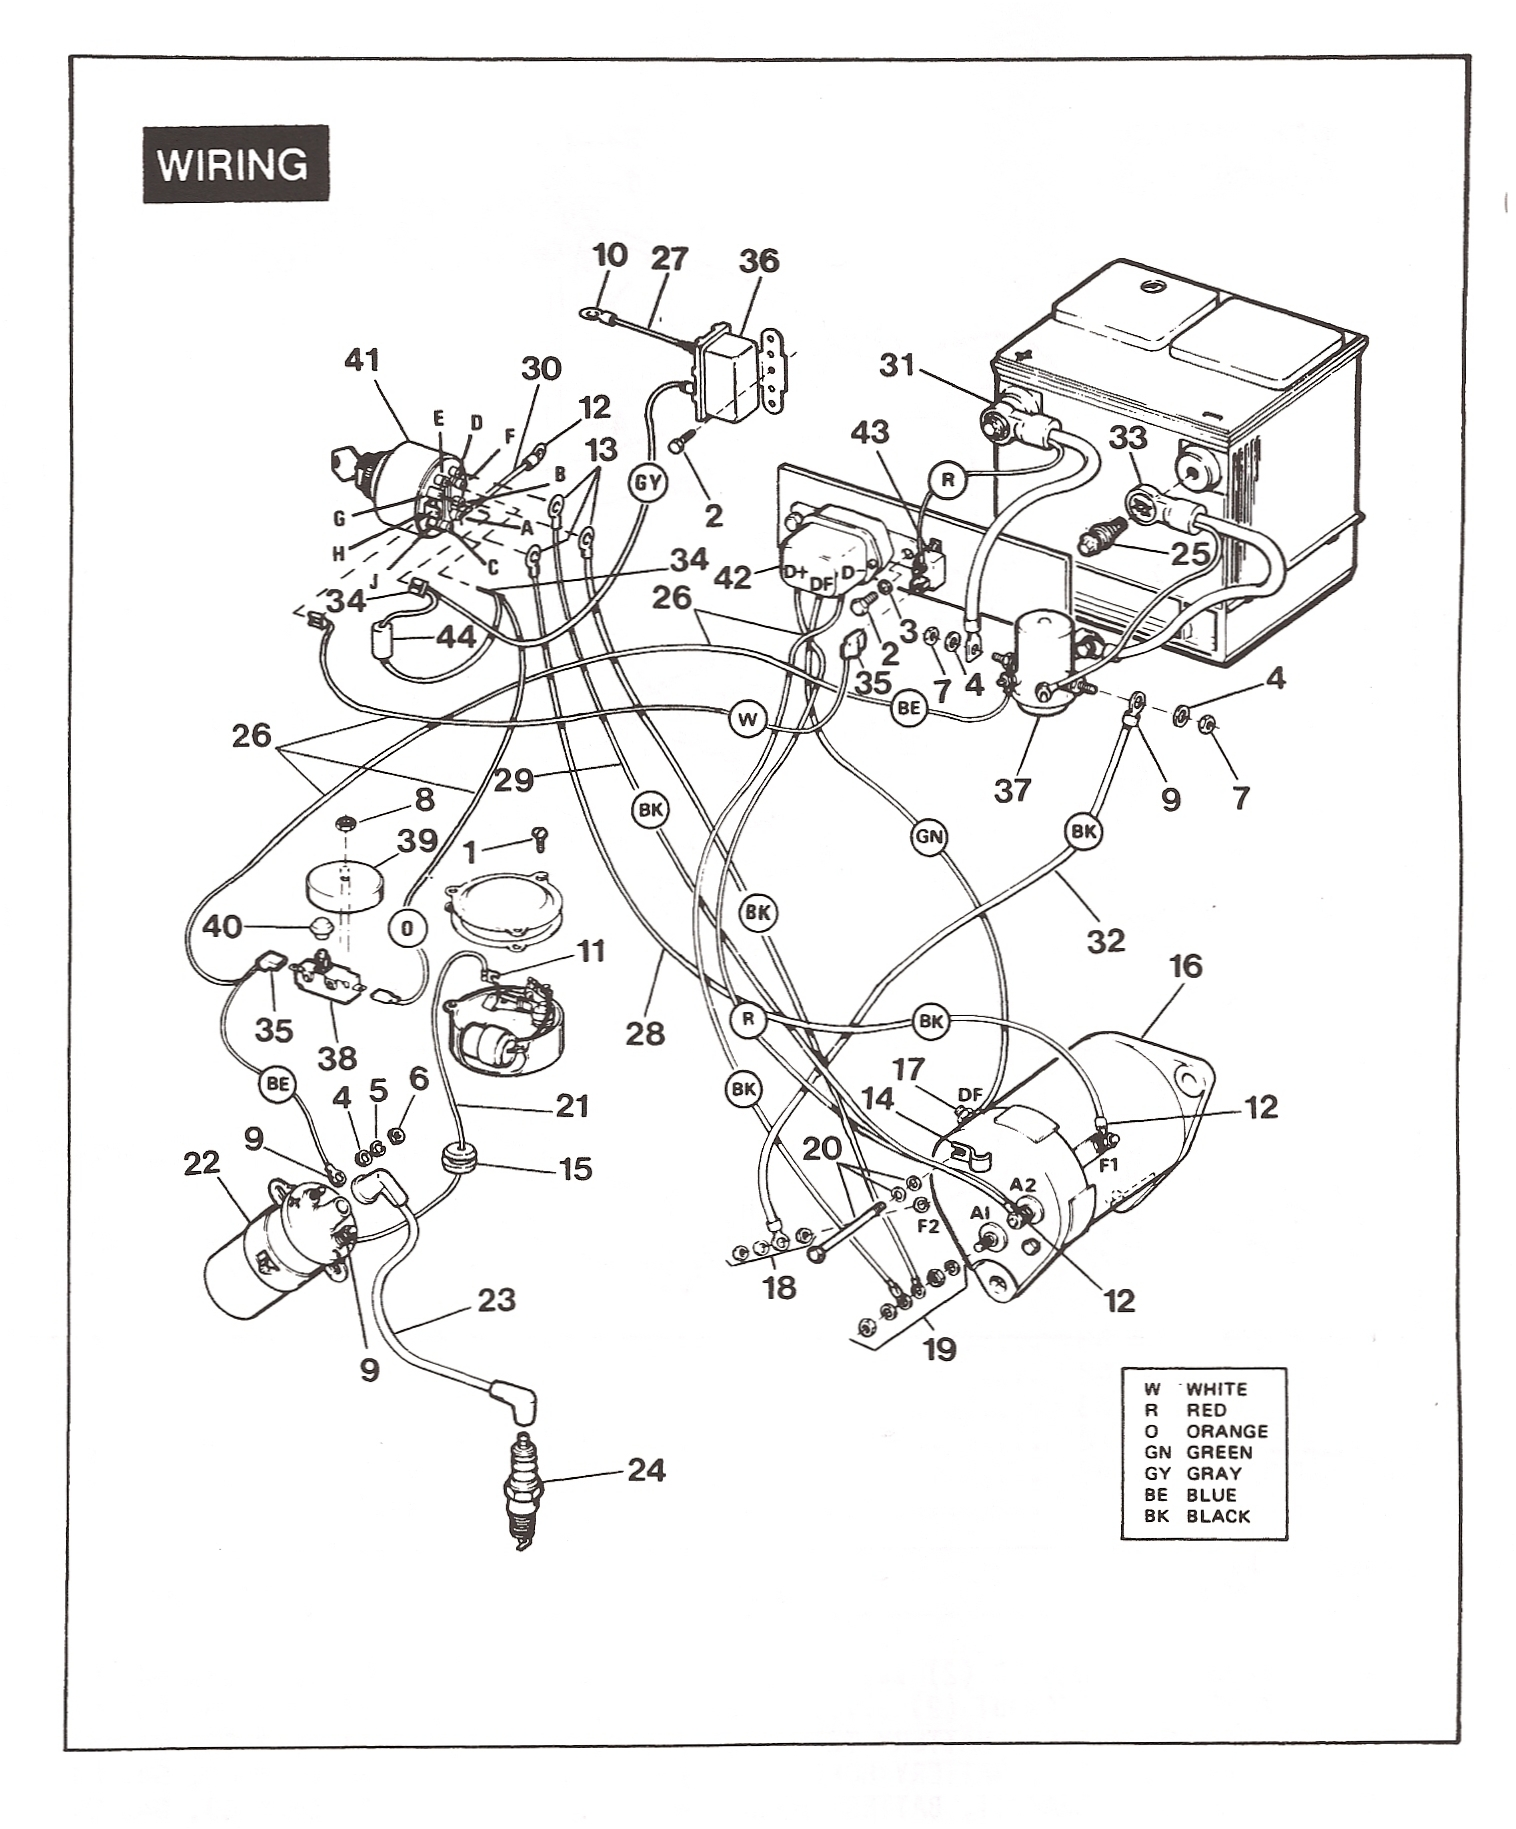 82_86_Columbia_Harley 36 volt v glide wiring problem readingrat net Harley Davidson Wiring Diagram Manual at edmiracle.co